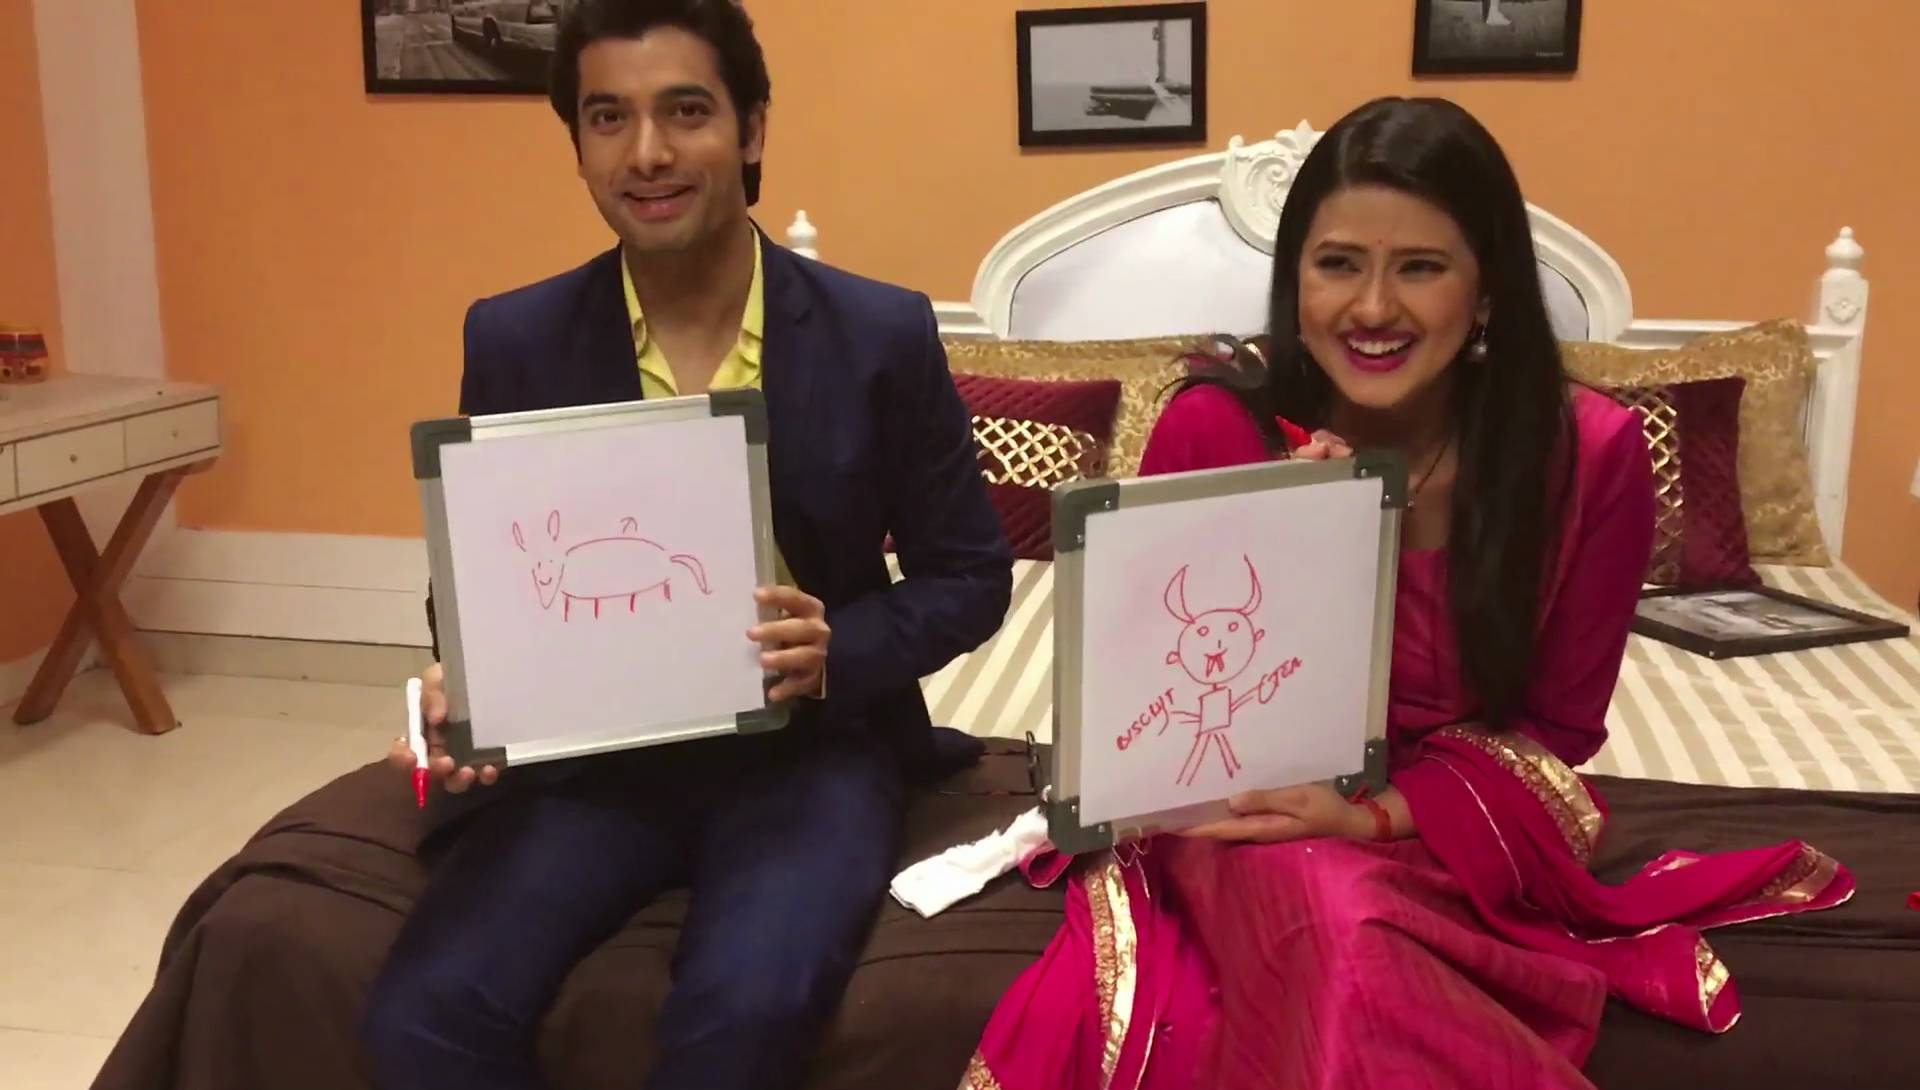 Sharad and Kratika from 'Kasam' indulge in a fun activity